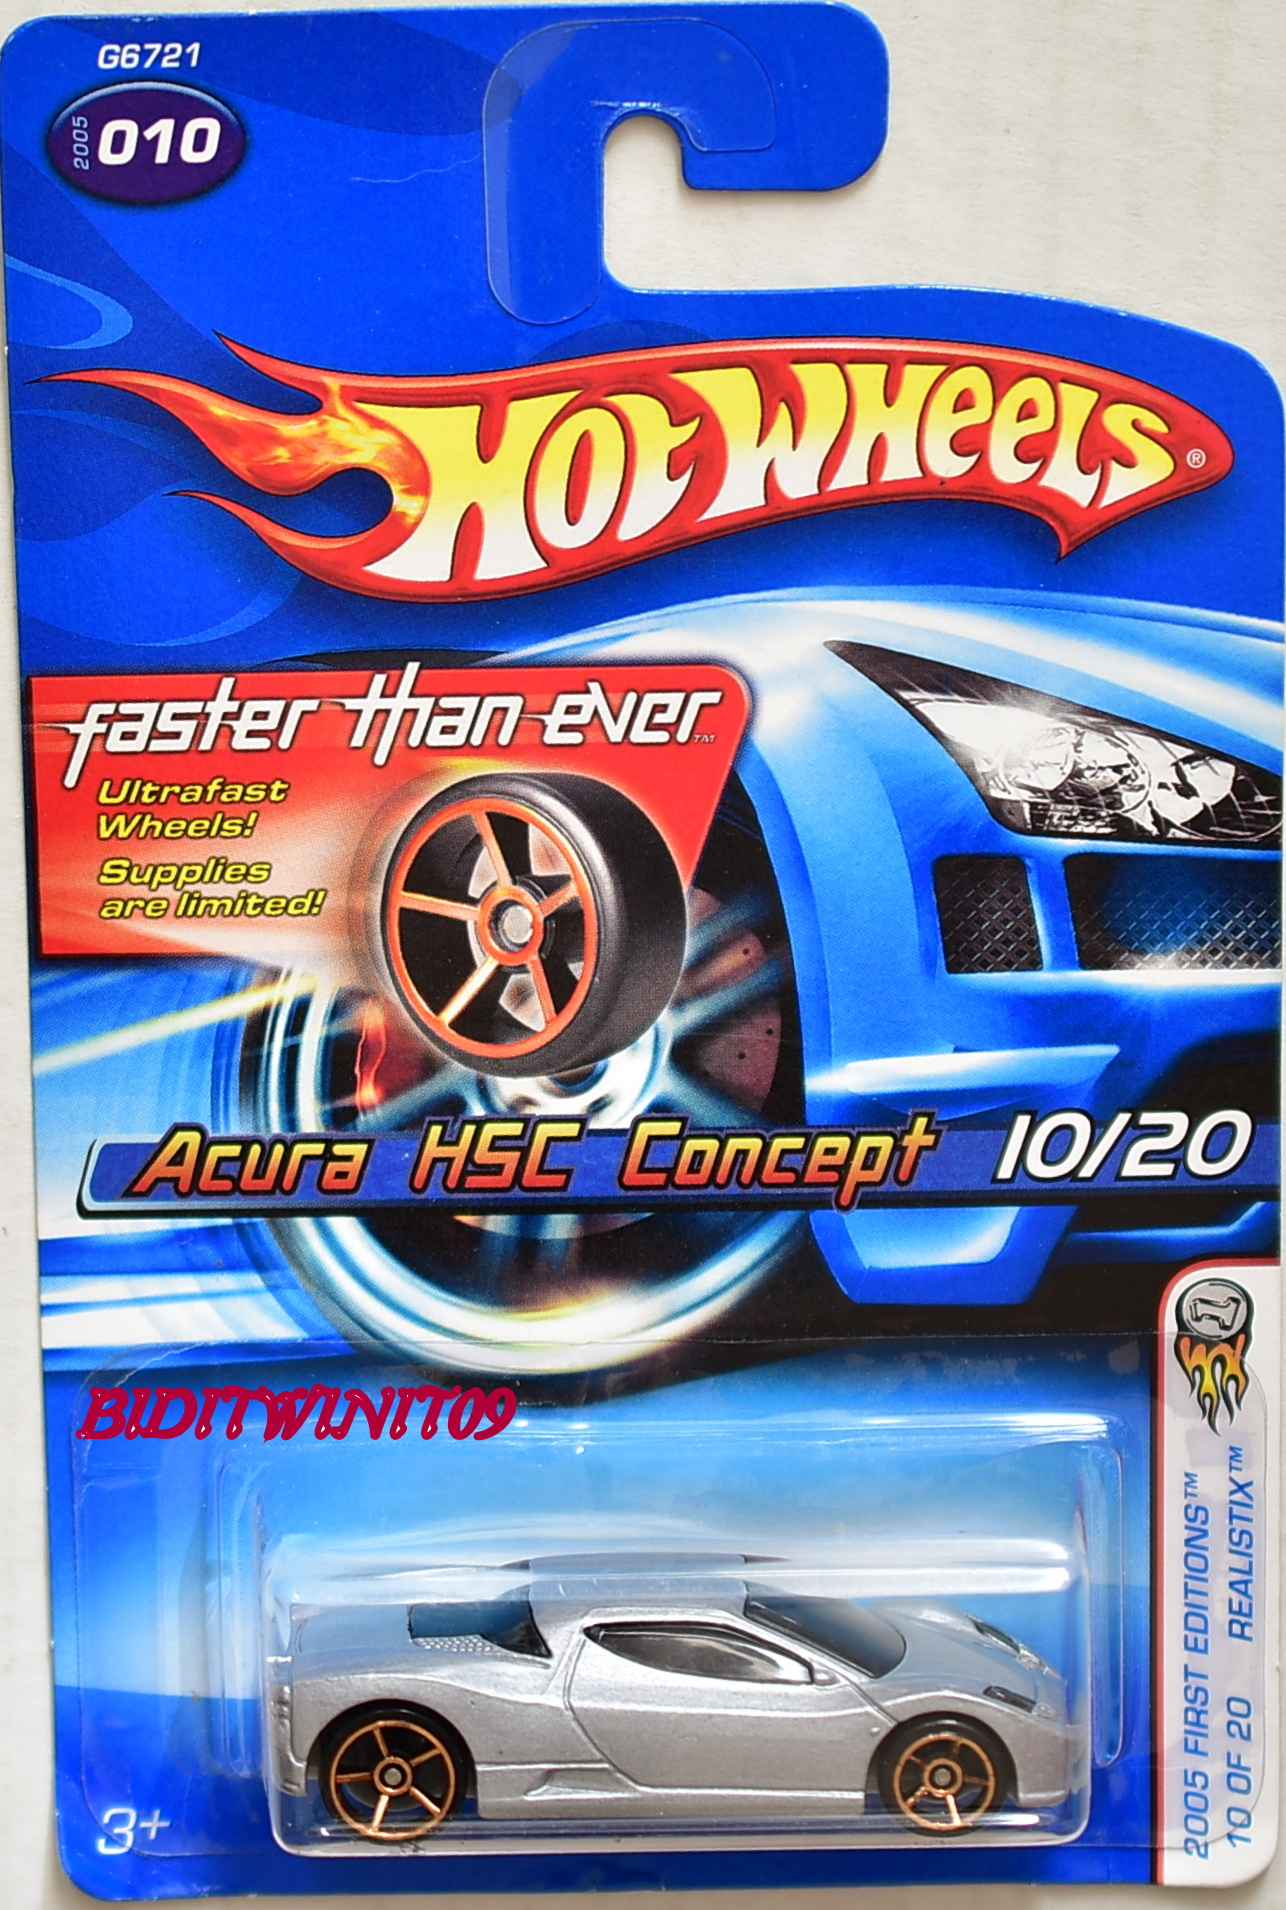 HOT WHEELS 2005 FIRST EDITIONS ACURA HSC CONCEPT FTE #010 SILVER